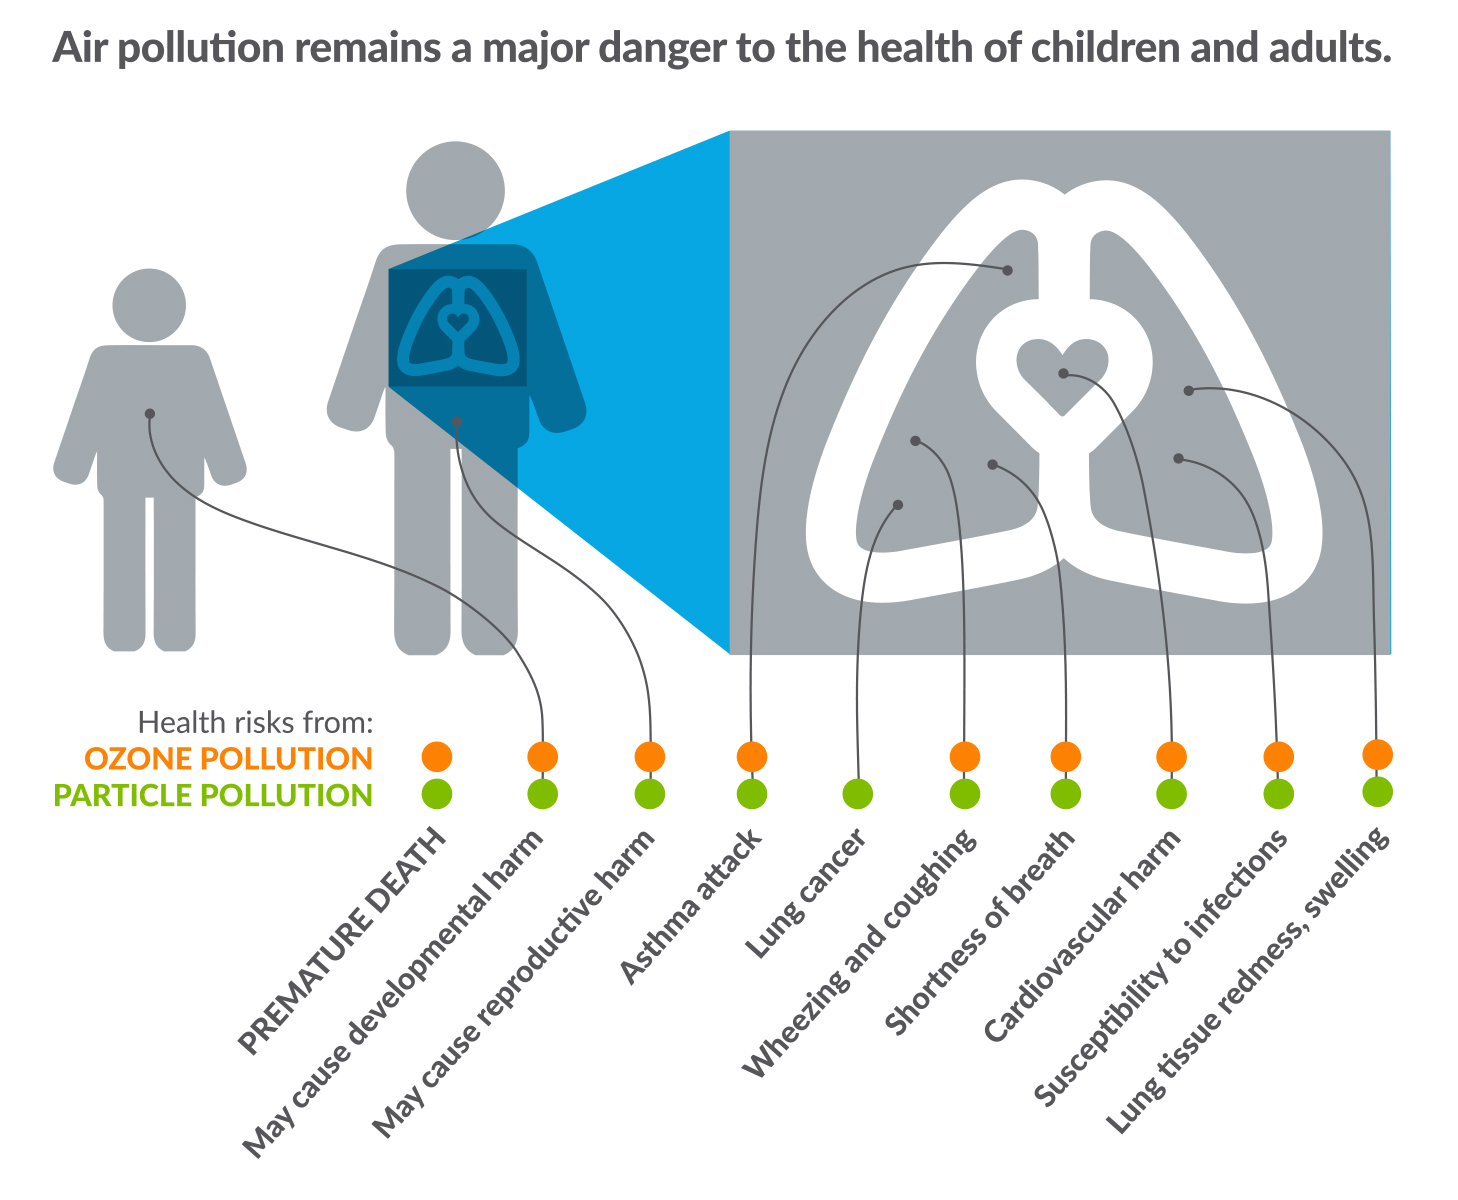 A chart showing the effects of air pollution on our health